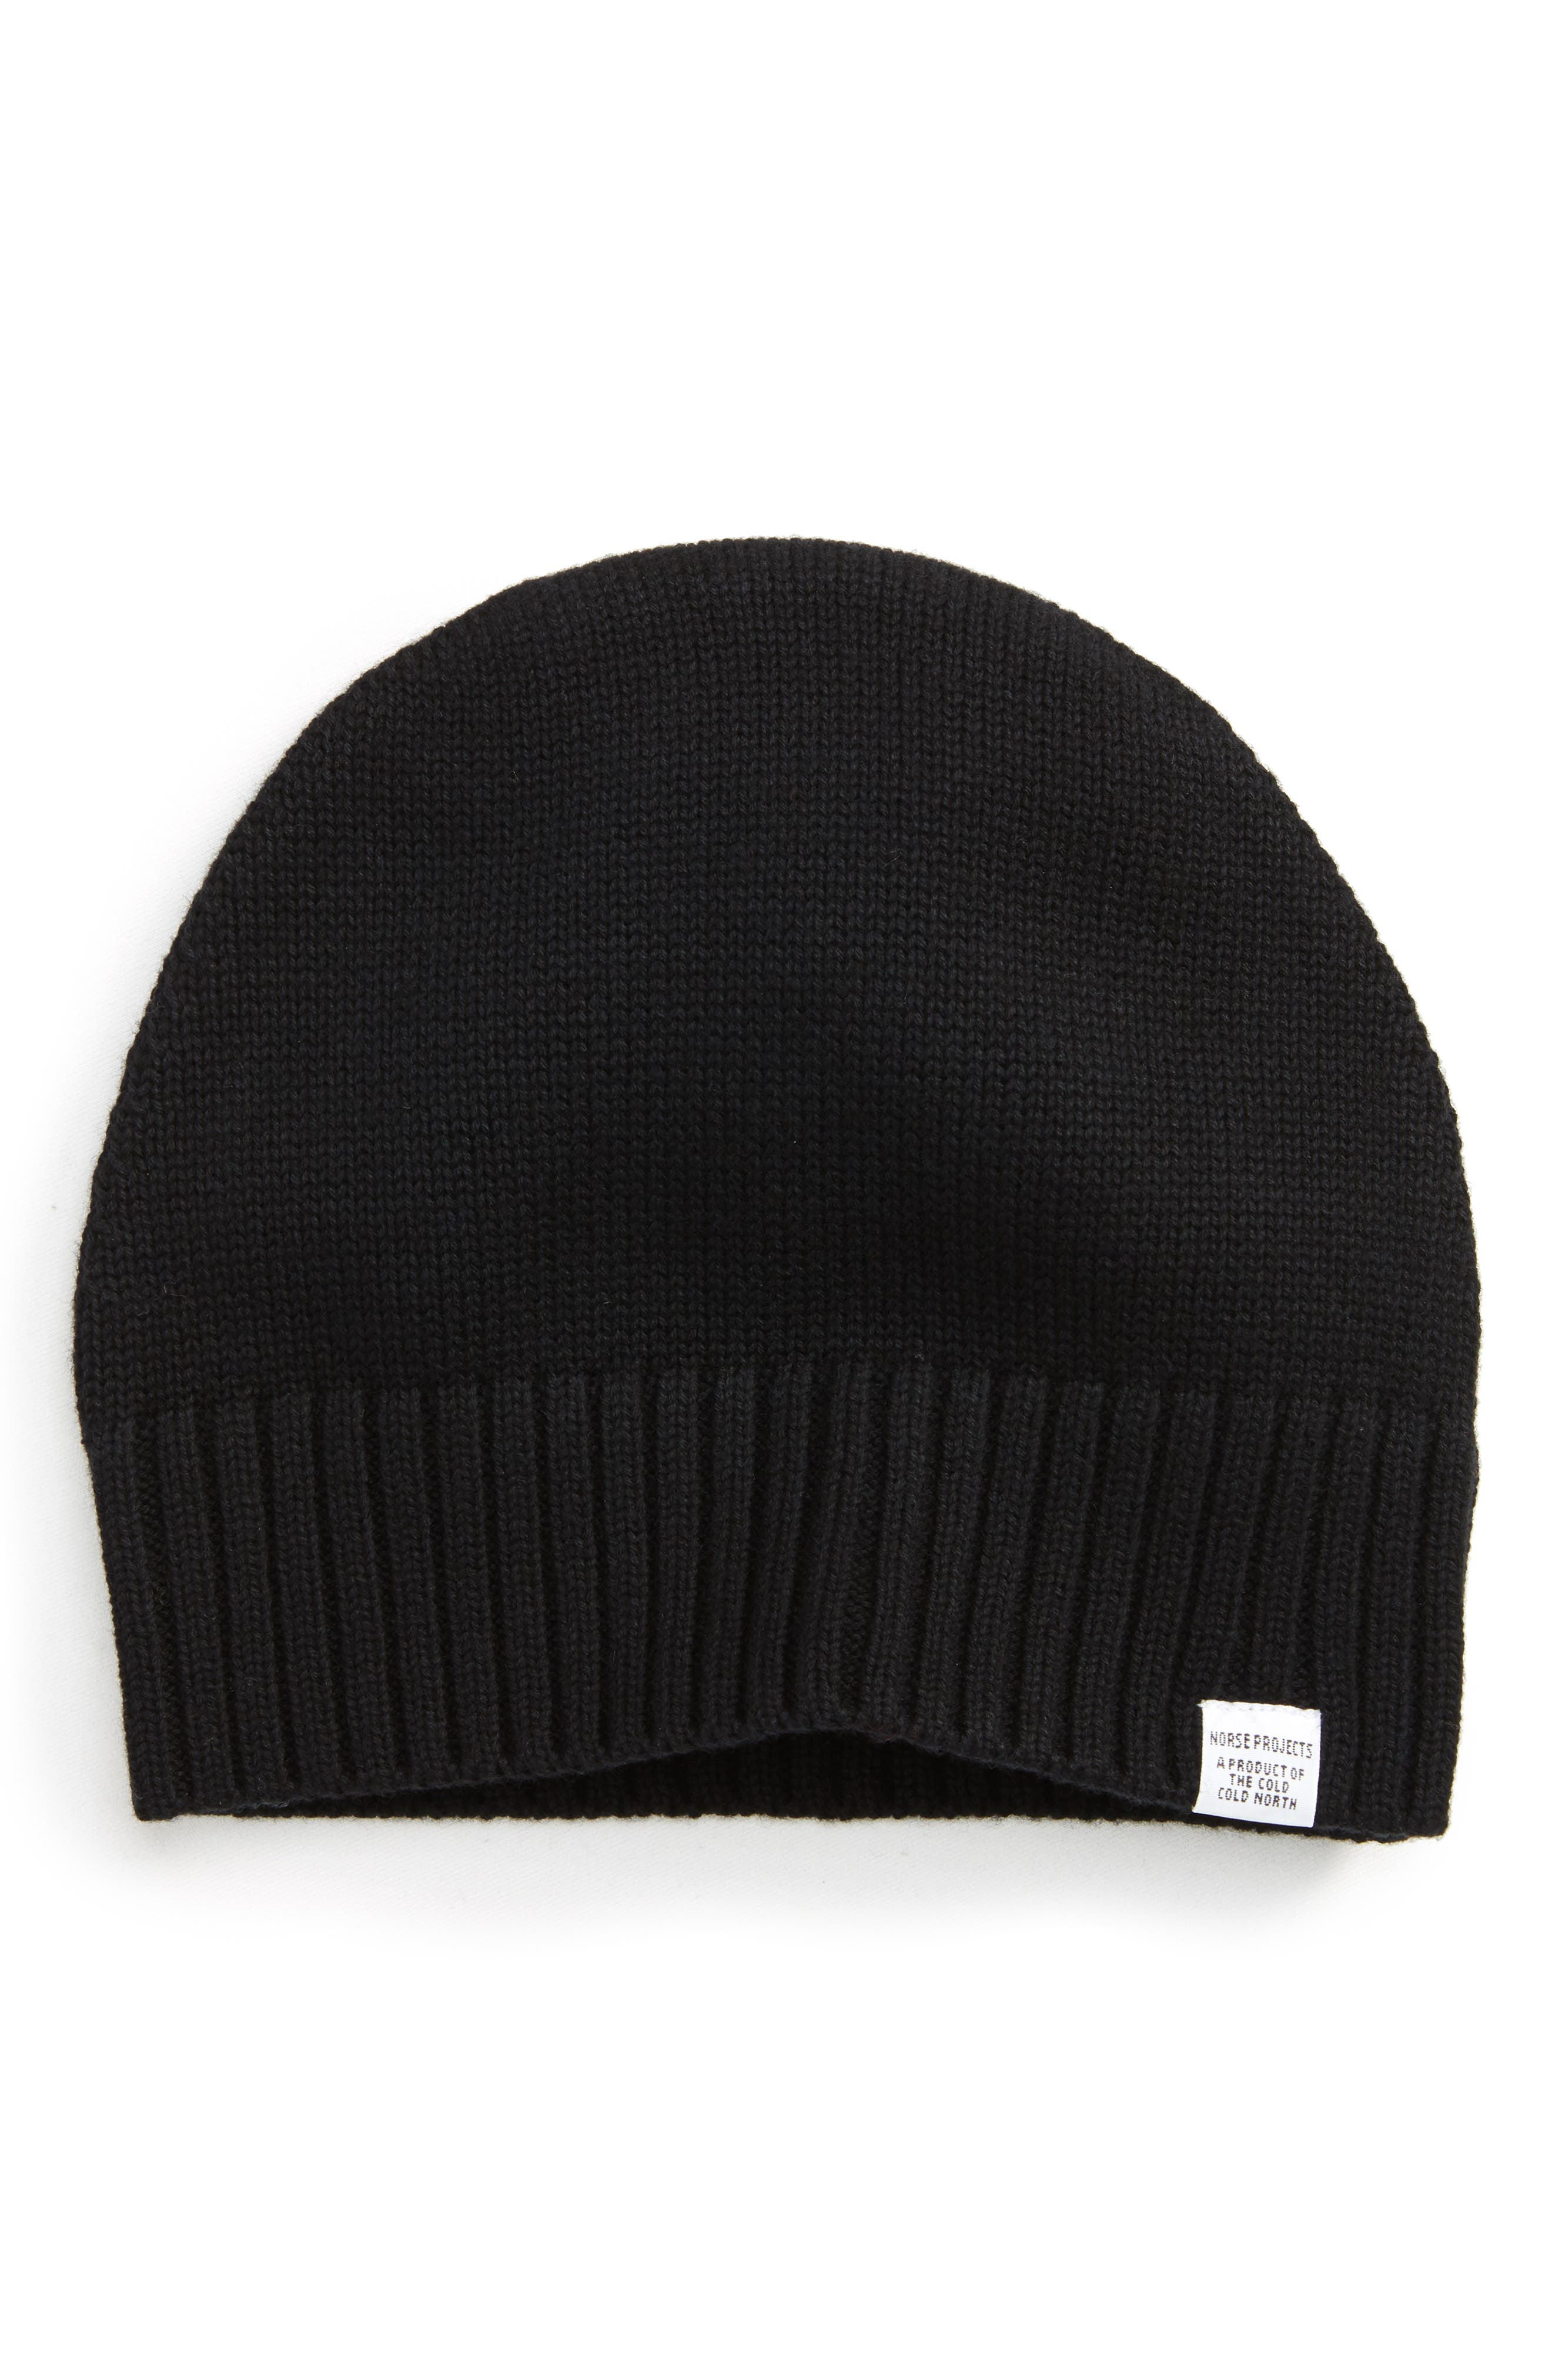 Main Image - Norse Project Knit Cap